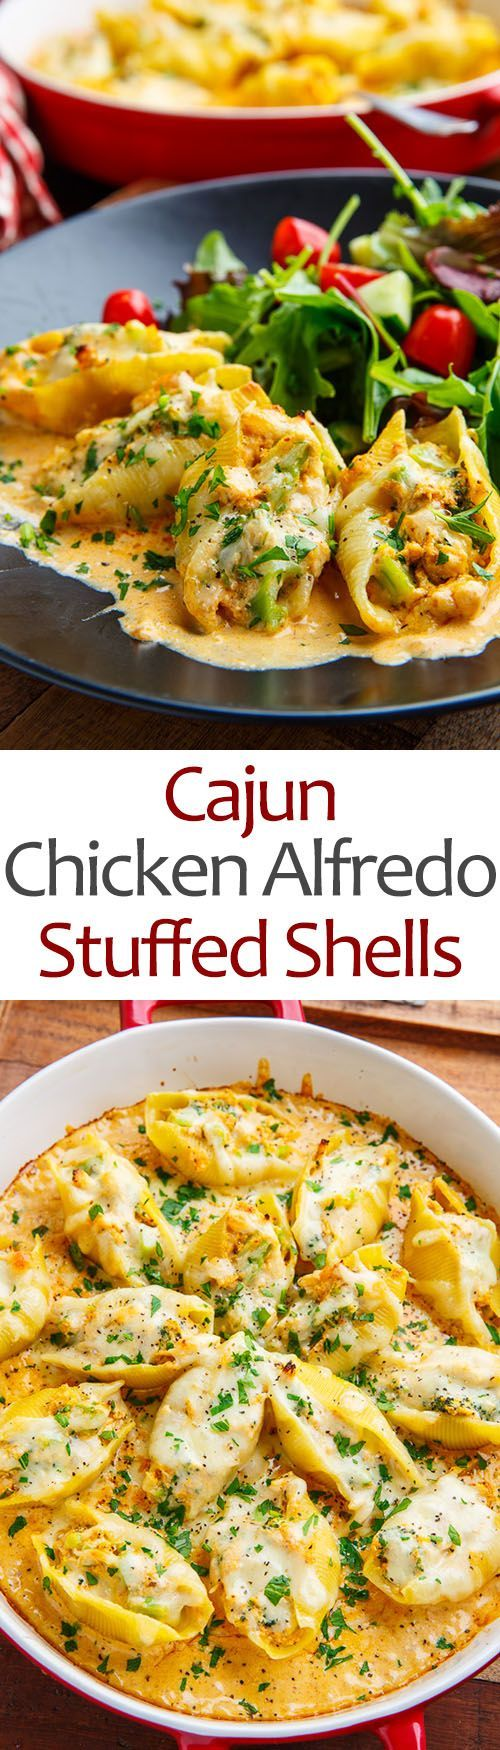 Cajun Chicken Alfredo Stuffed Shells